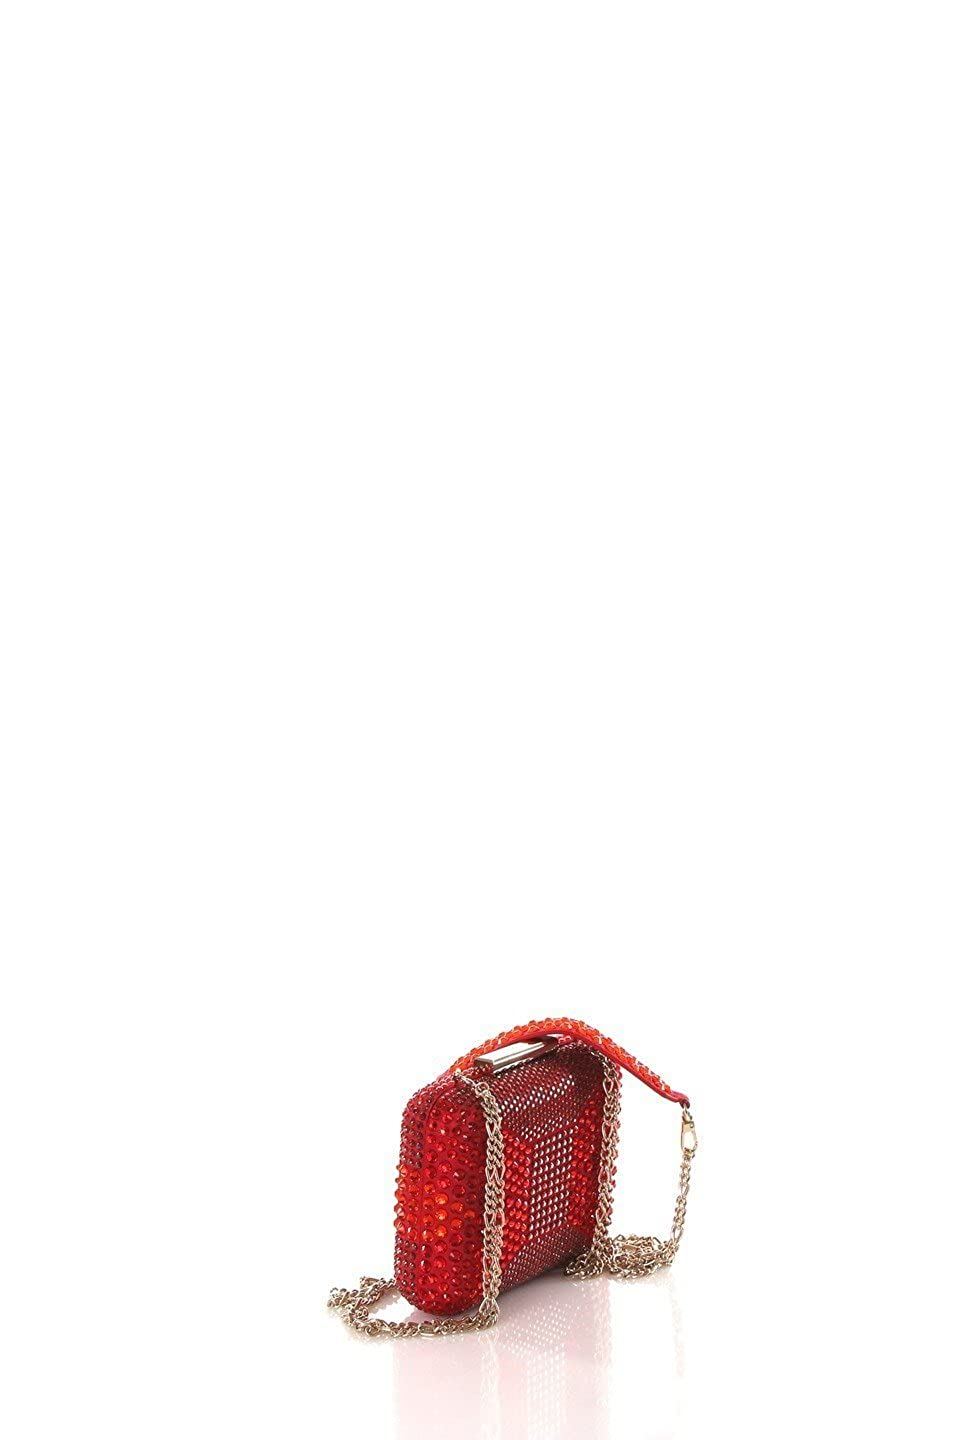 competitive price 8364a 23cb9 PINKO ANGERS ROSSO BAG Women ROSSO UNI: Amazon.co.uk: Clothing